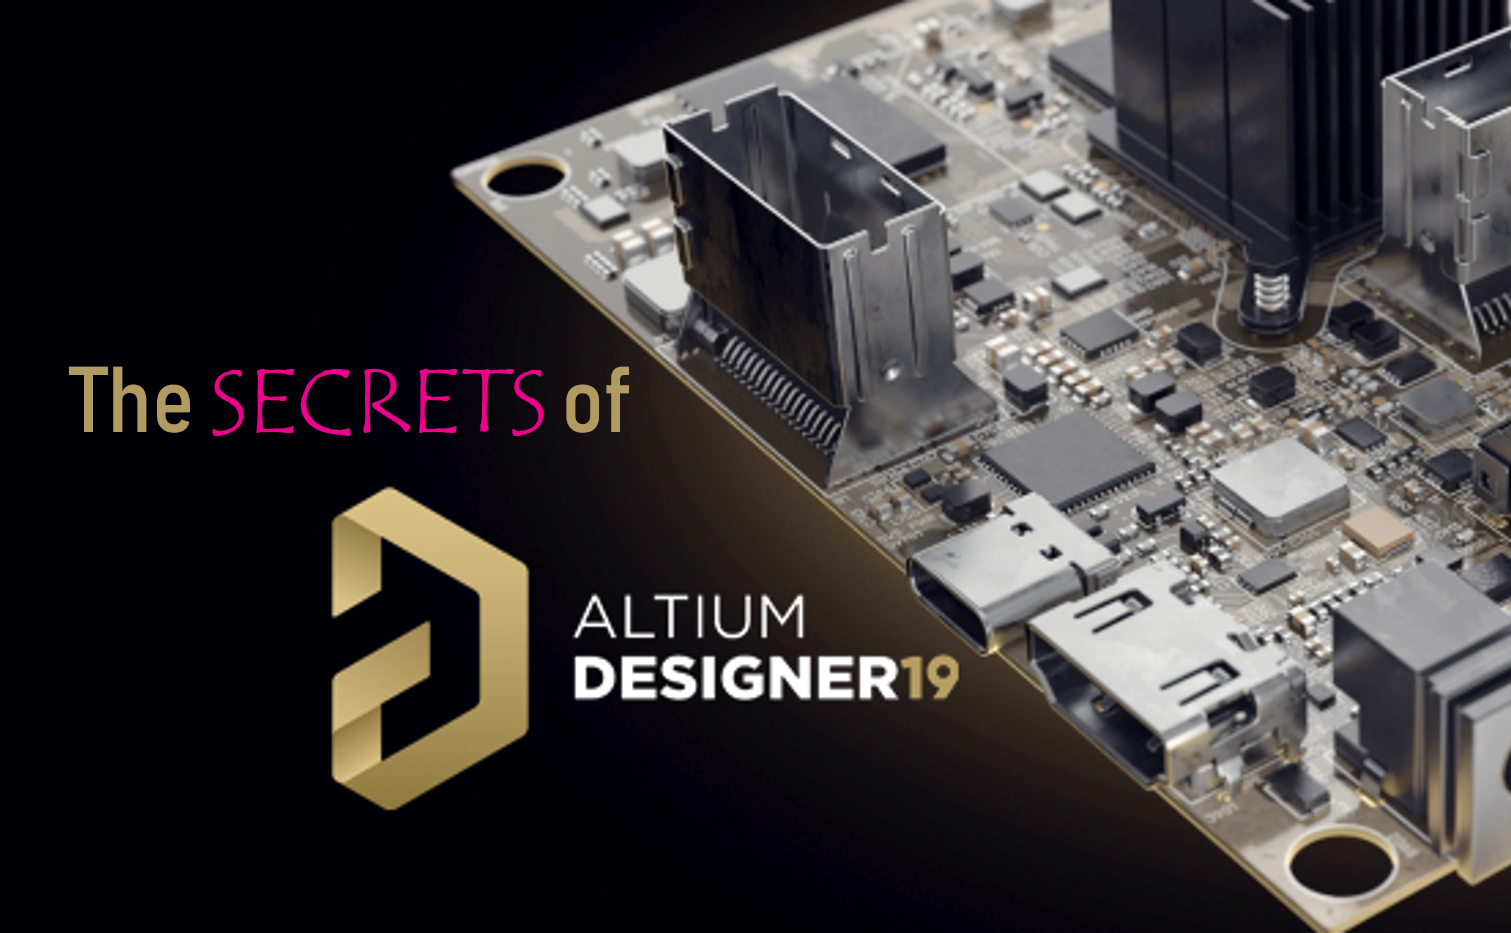 The secrets of Altium Designer 19